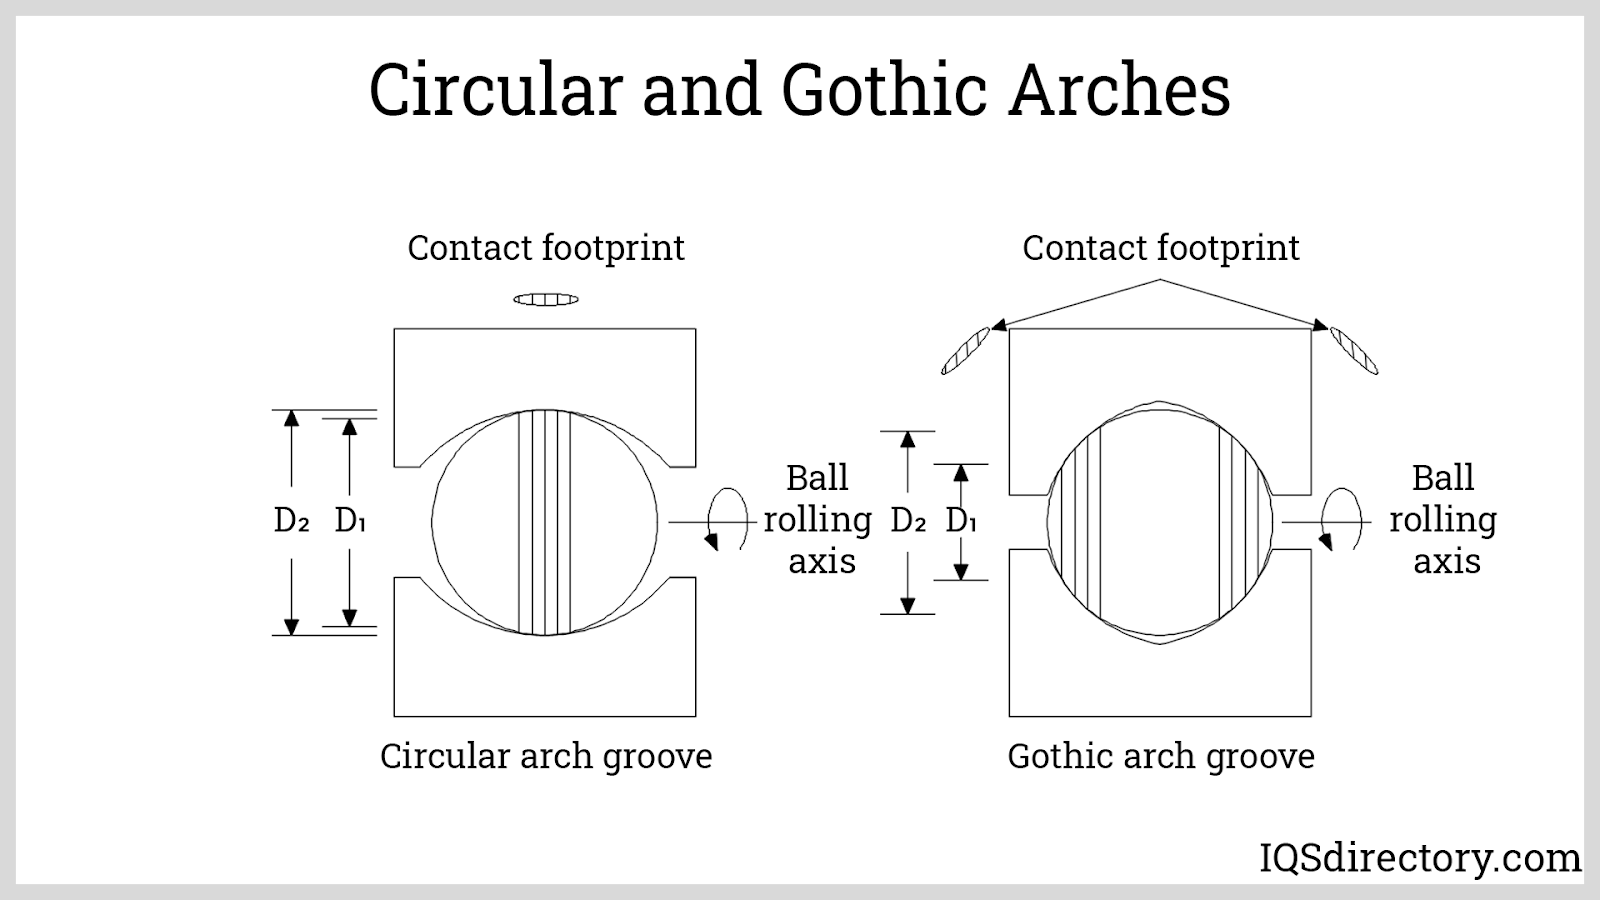 Circular and Gothic Arches